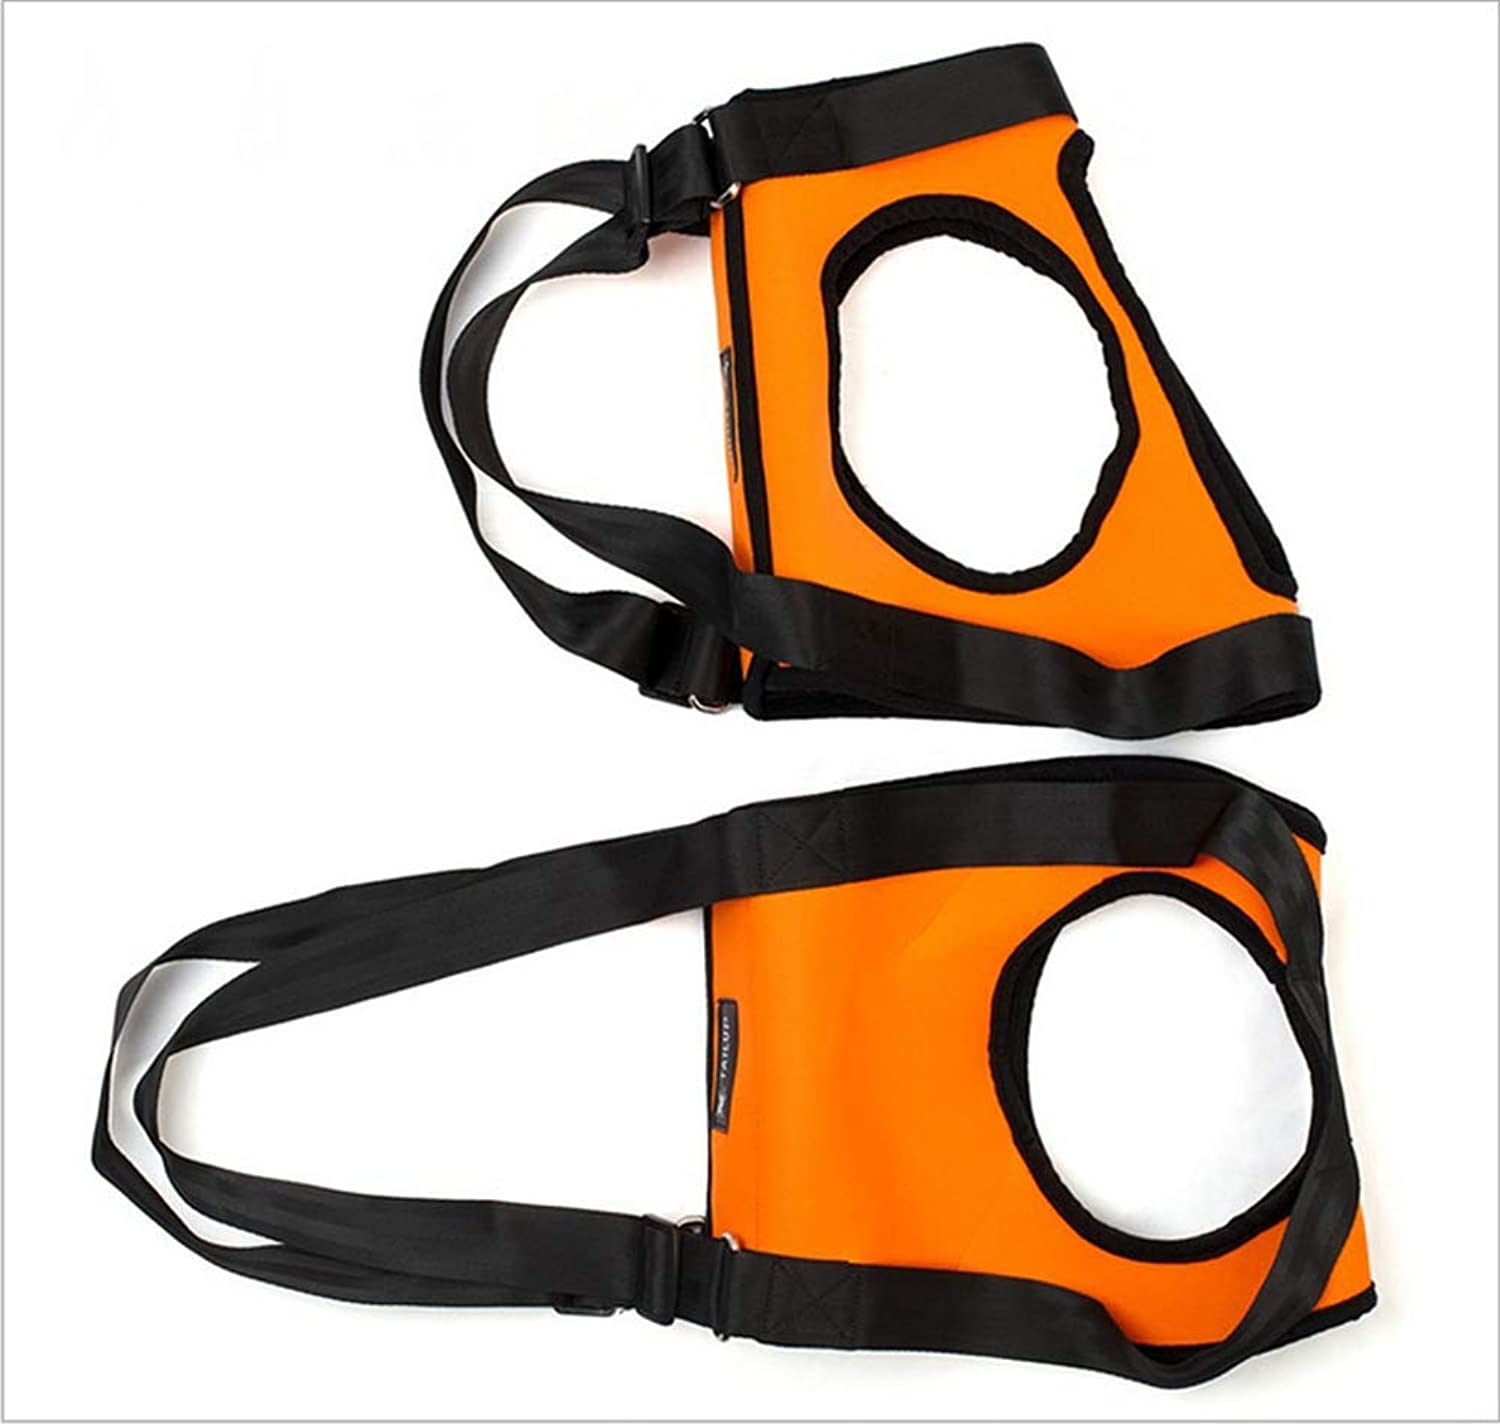 Dog Lift Support Harness,Old Dog Hind Leg Auxiliary Belt Sling with Handle Rehabilitation Basic Collars Harness for Canine Aid for Weak Hind Leg Joints Surgery,orange,S